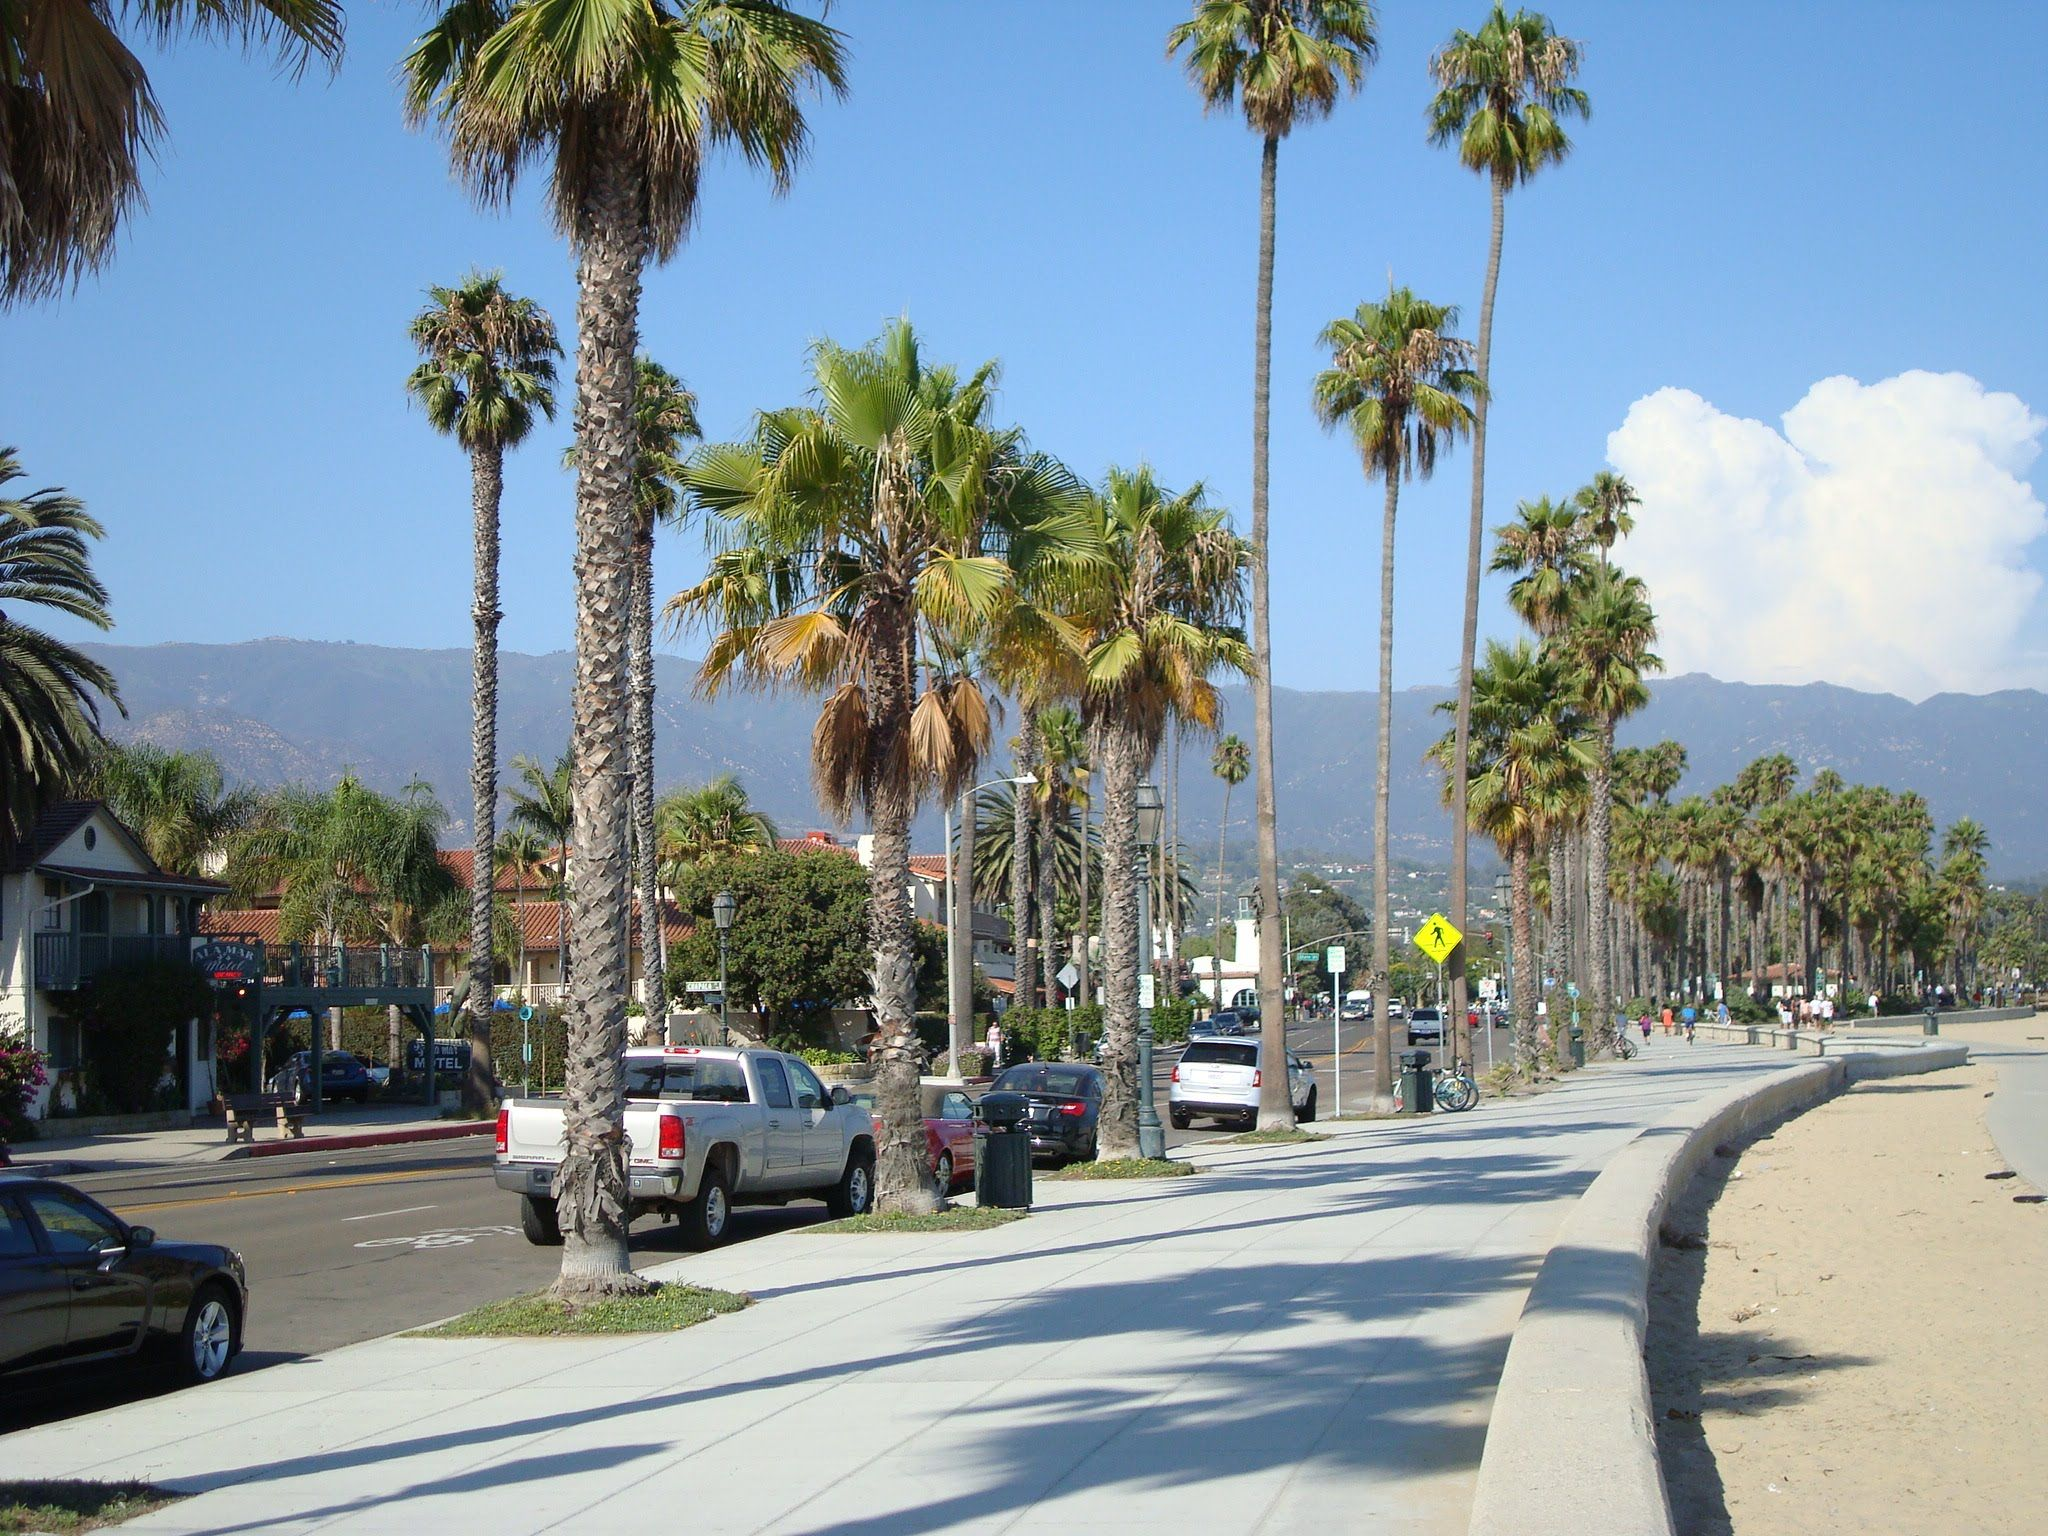 Los Angeles Santa Monica Venice Beach Malibu California Travel Tour